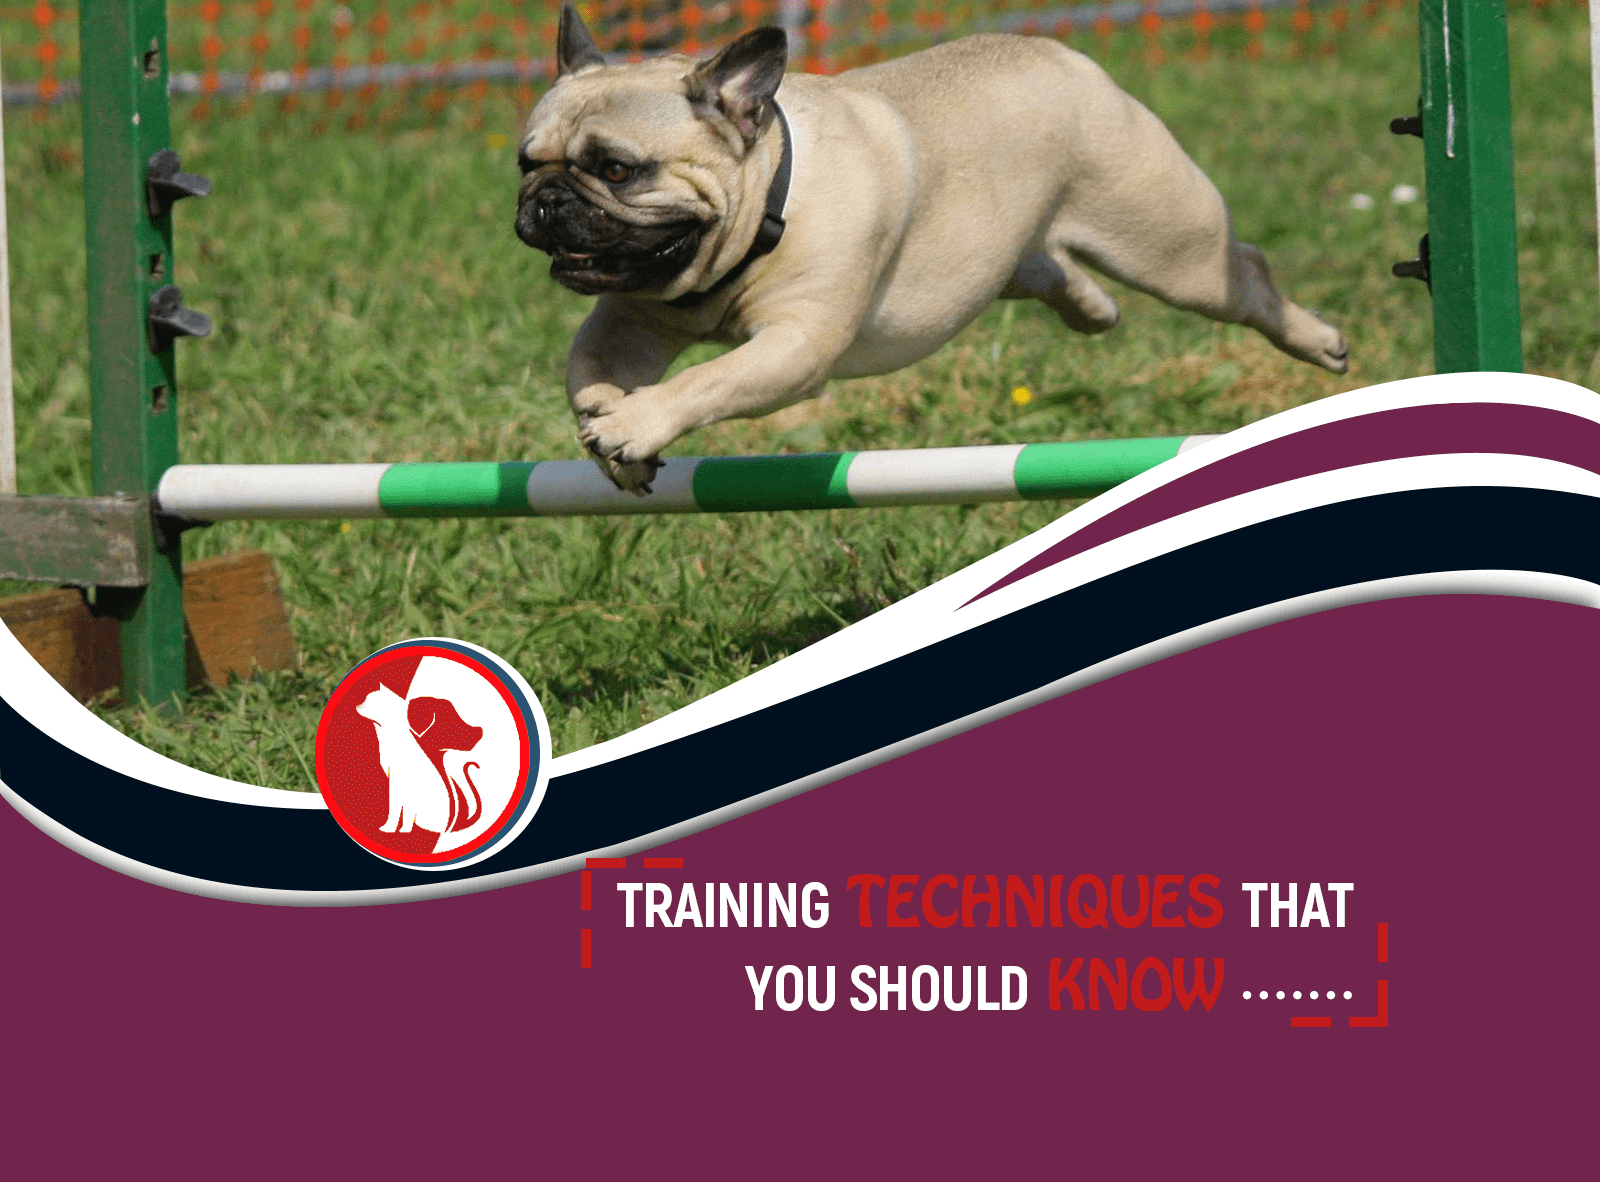 Dog Training Techniques That You Should Know